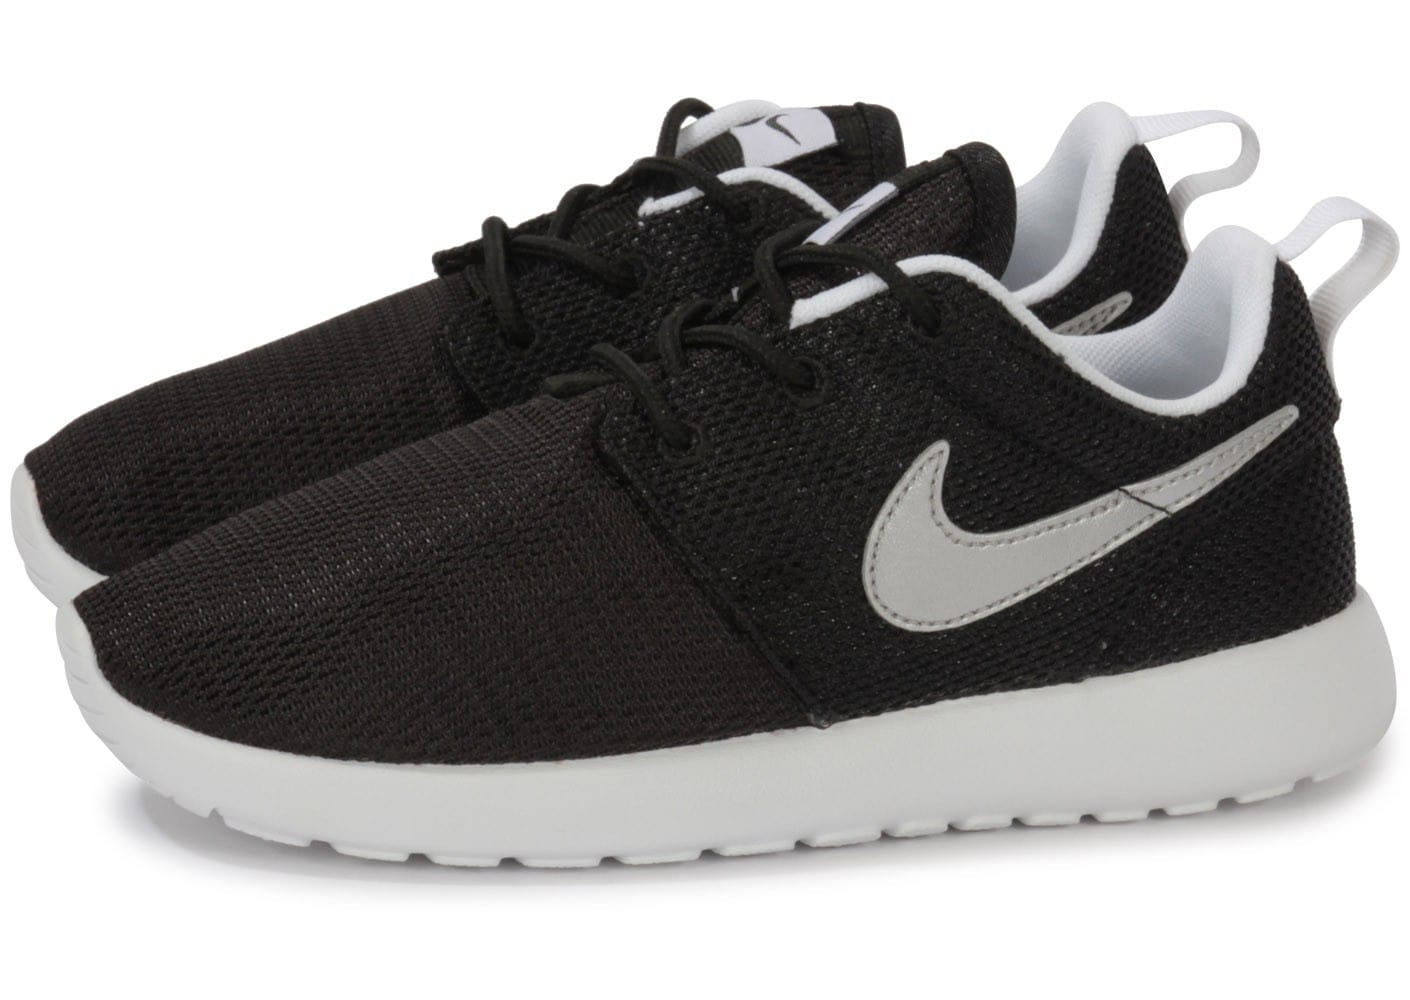 nike roshe run enfant noire et blanche chaussures chaussures chausport. Black Bedroom Furniture Sets. Home Design Ideas